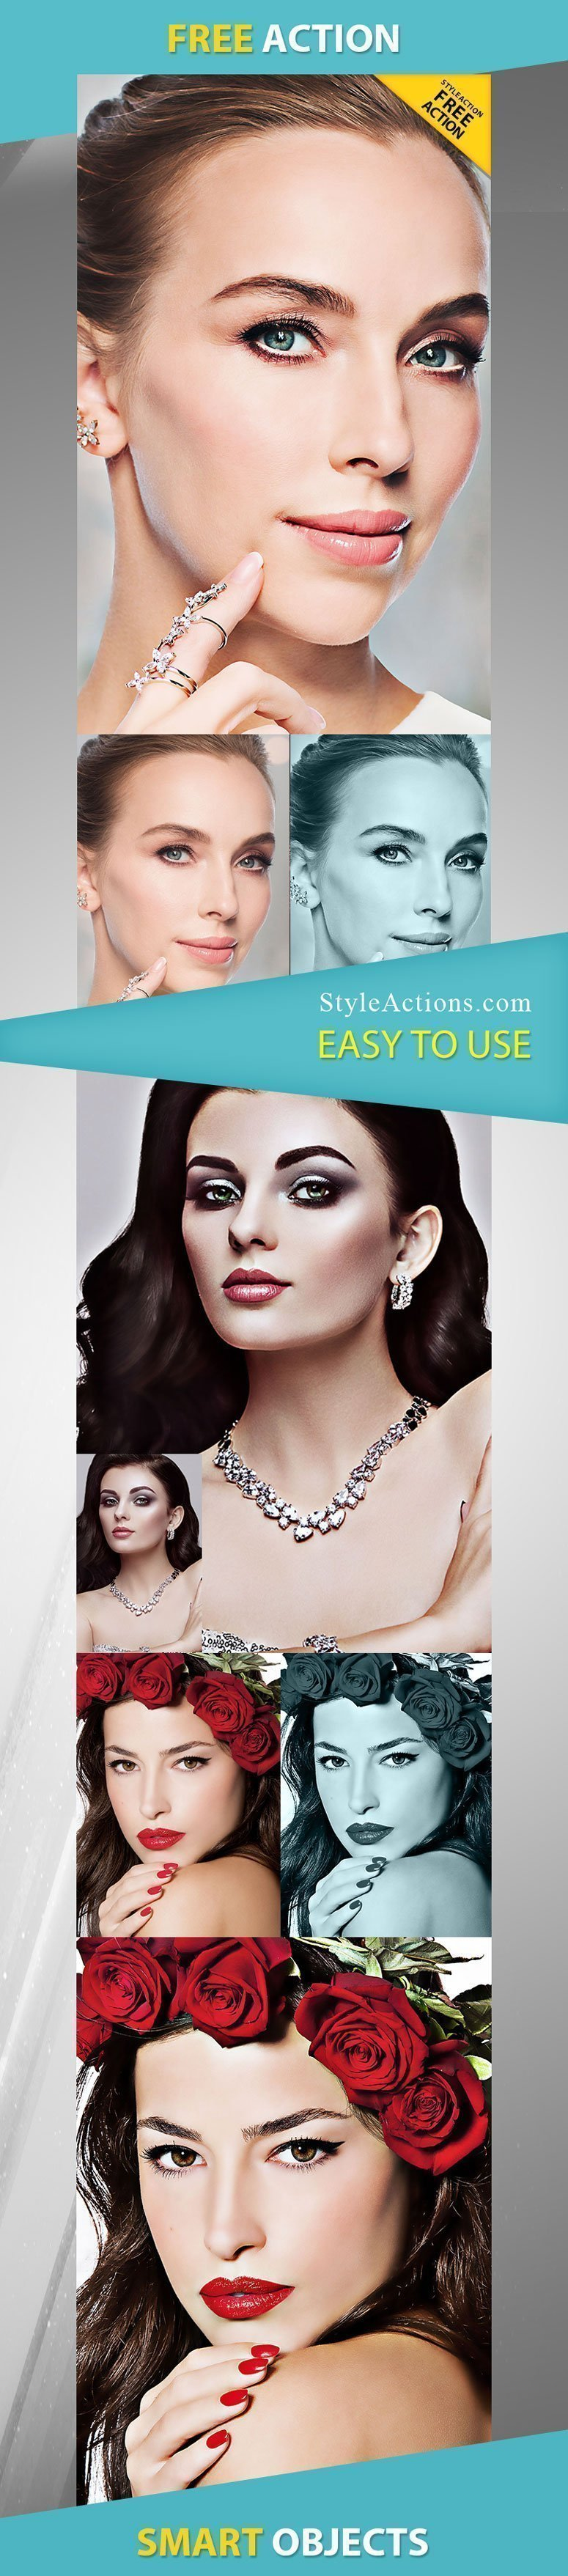 Retouching Photoshop Action Free Download #17351 - Styleflyers